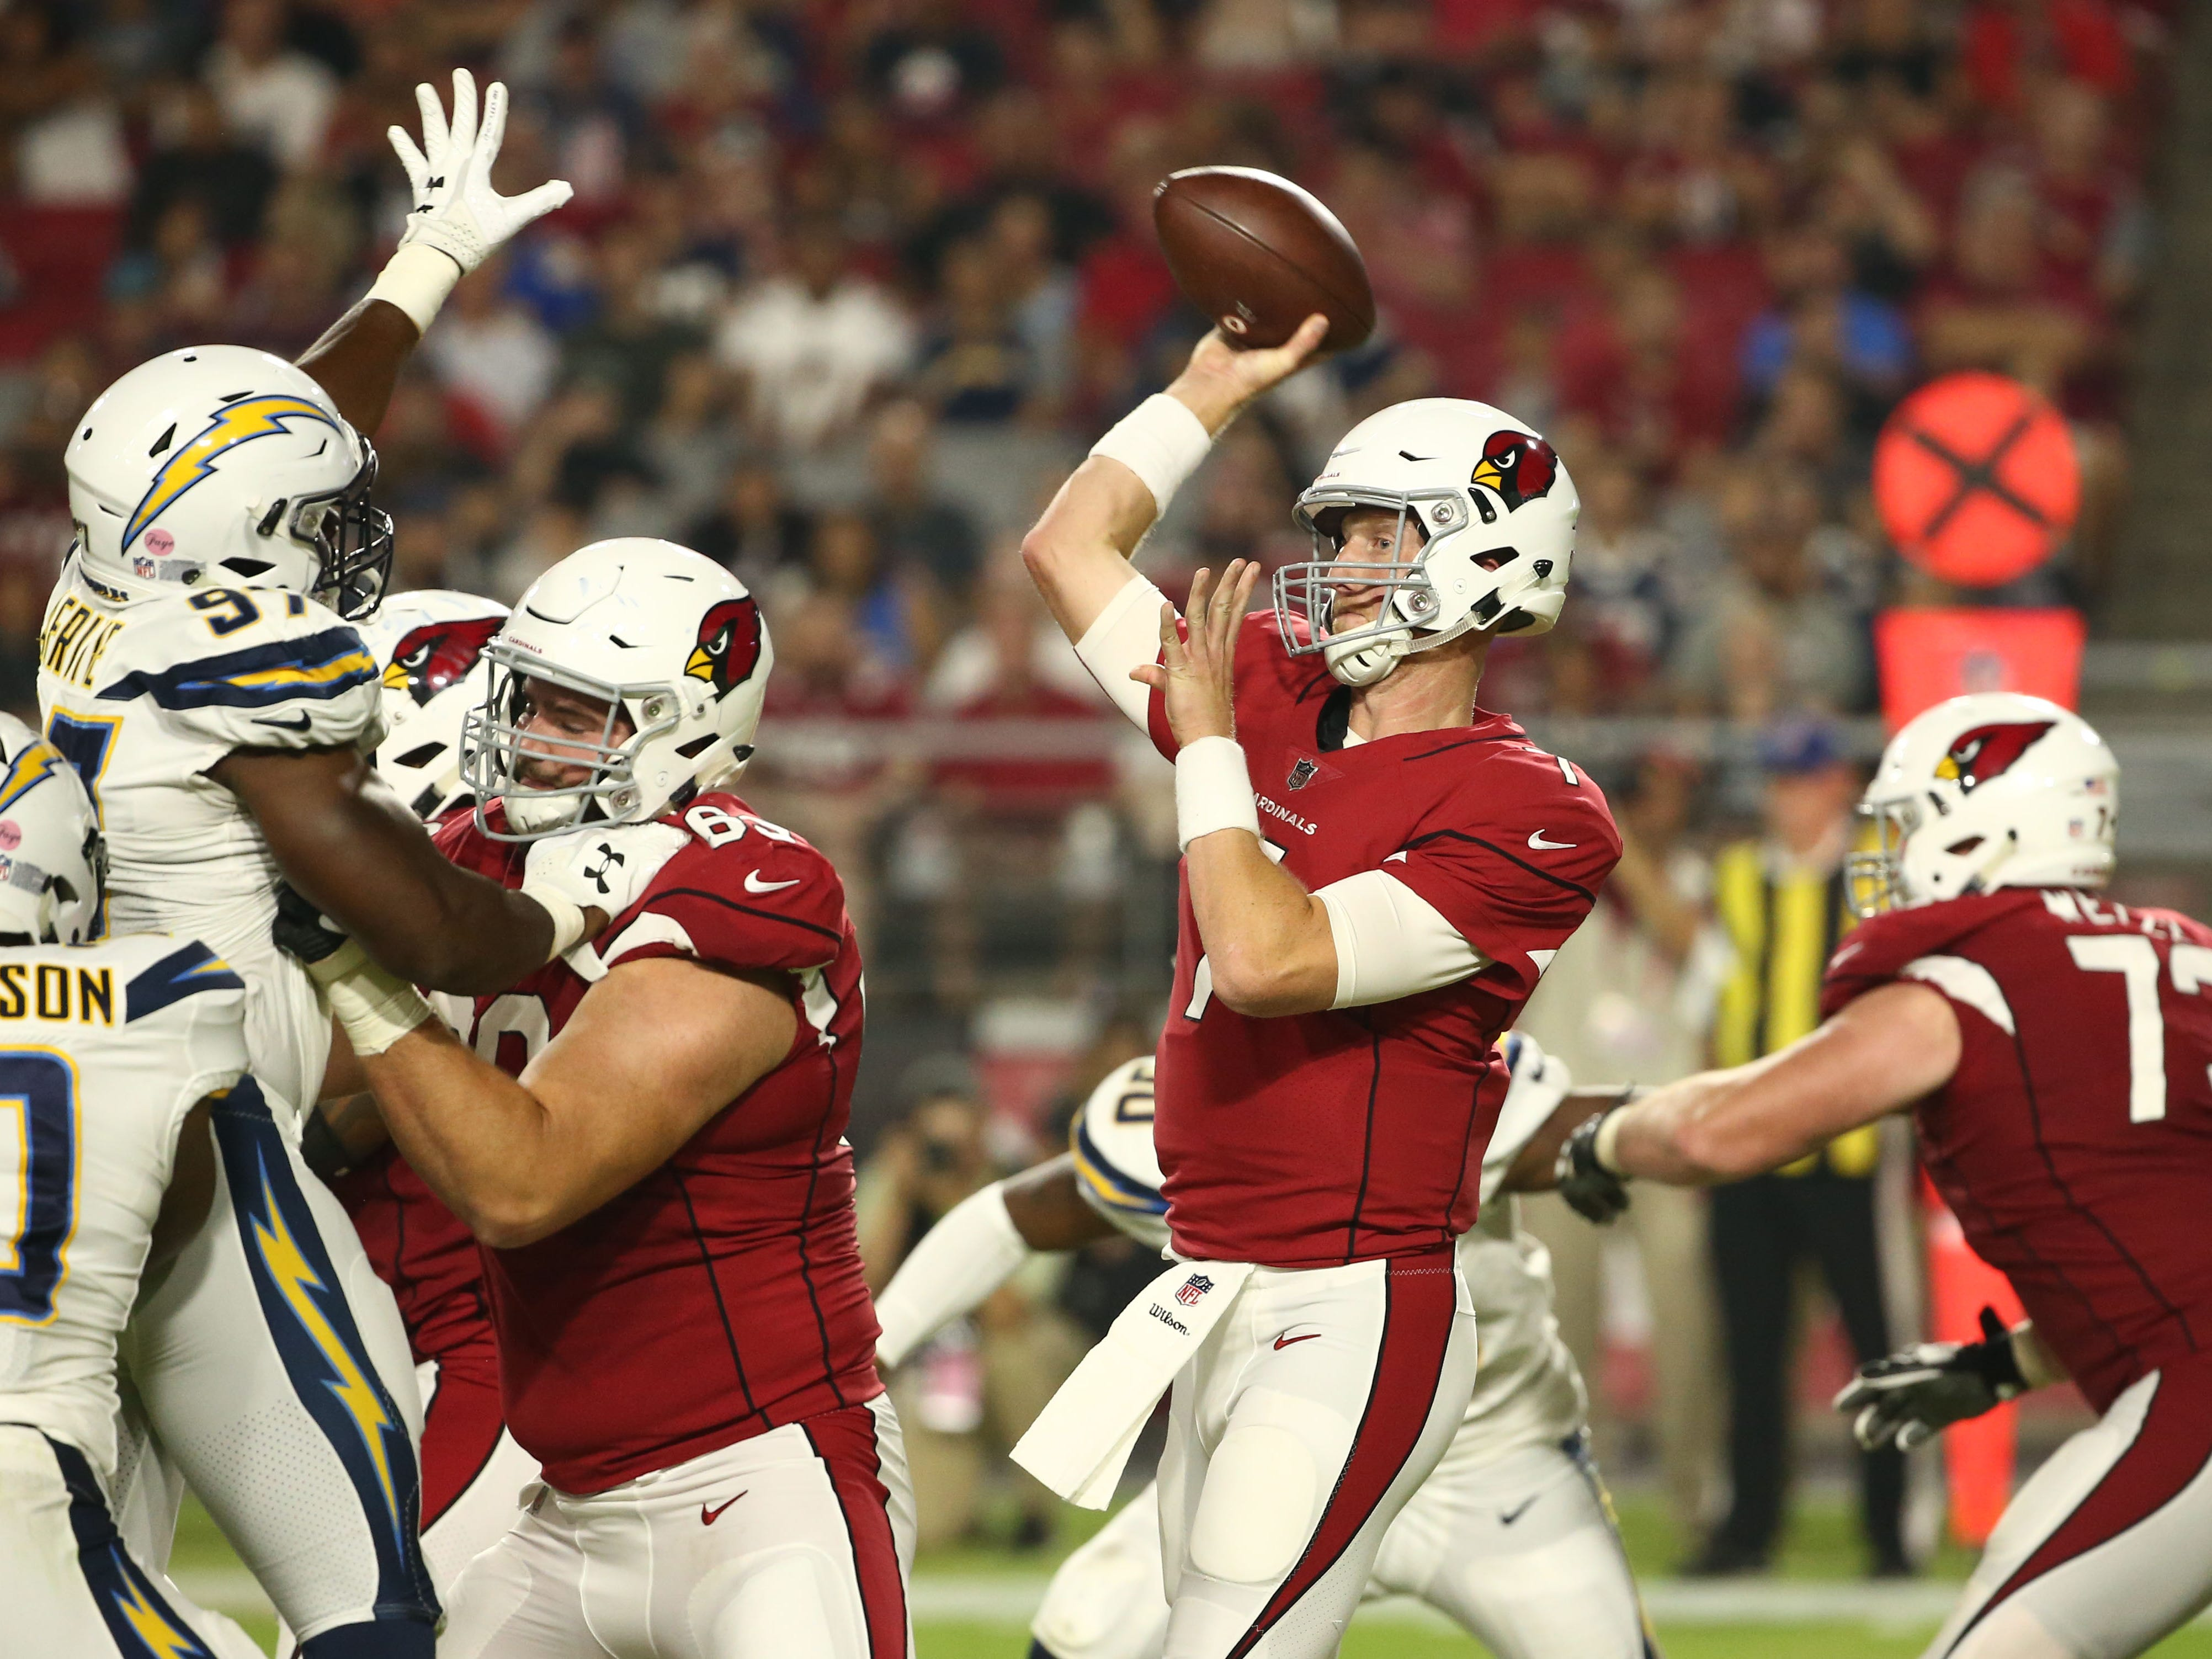 Arizona Cardinals quarterback Mike Glennon throws a pass against the L.A. Chargers in the second half during a preseason NFL football game on Aug. 11, 2018 at University of Phoenix Stadium in Glendale, Ariz.